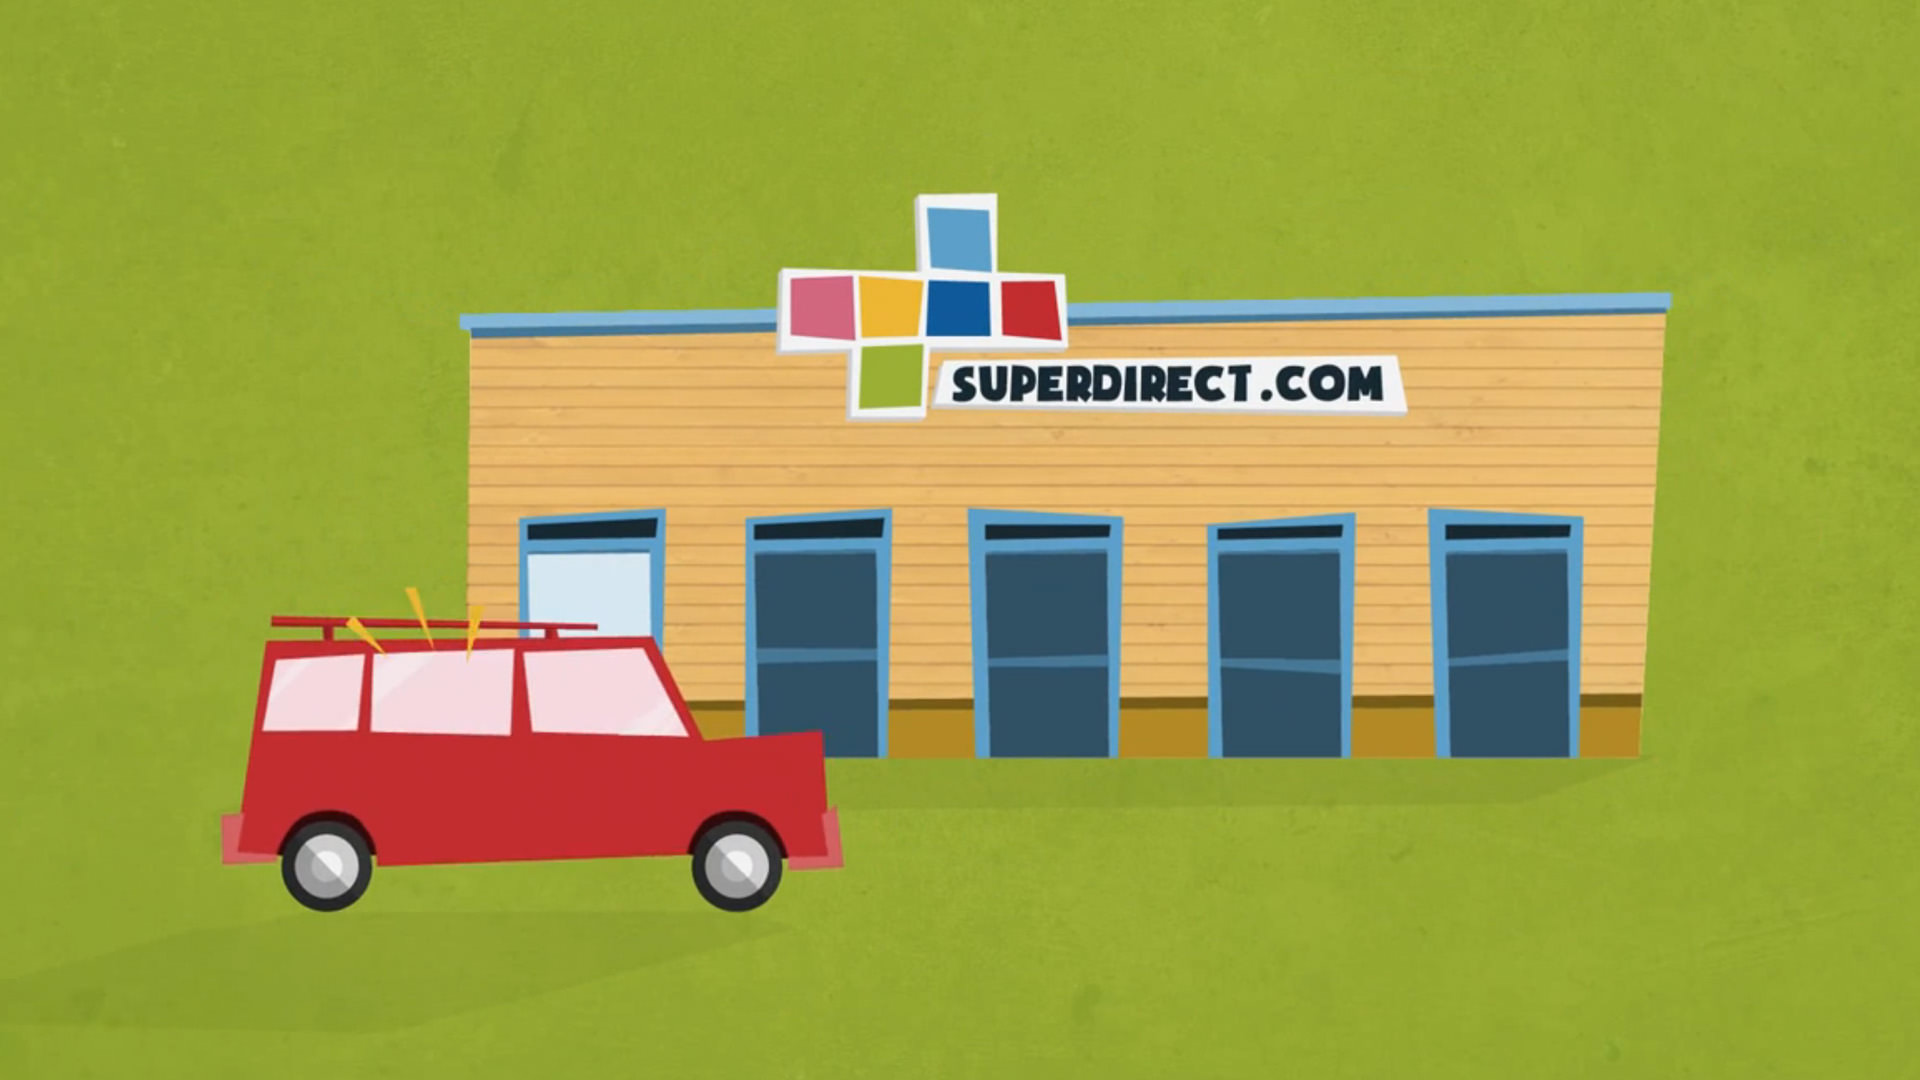 Superdirect explanimation